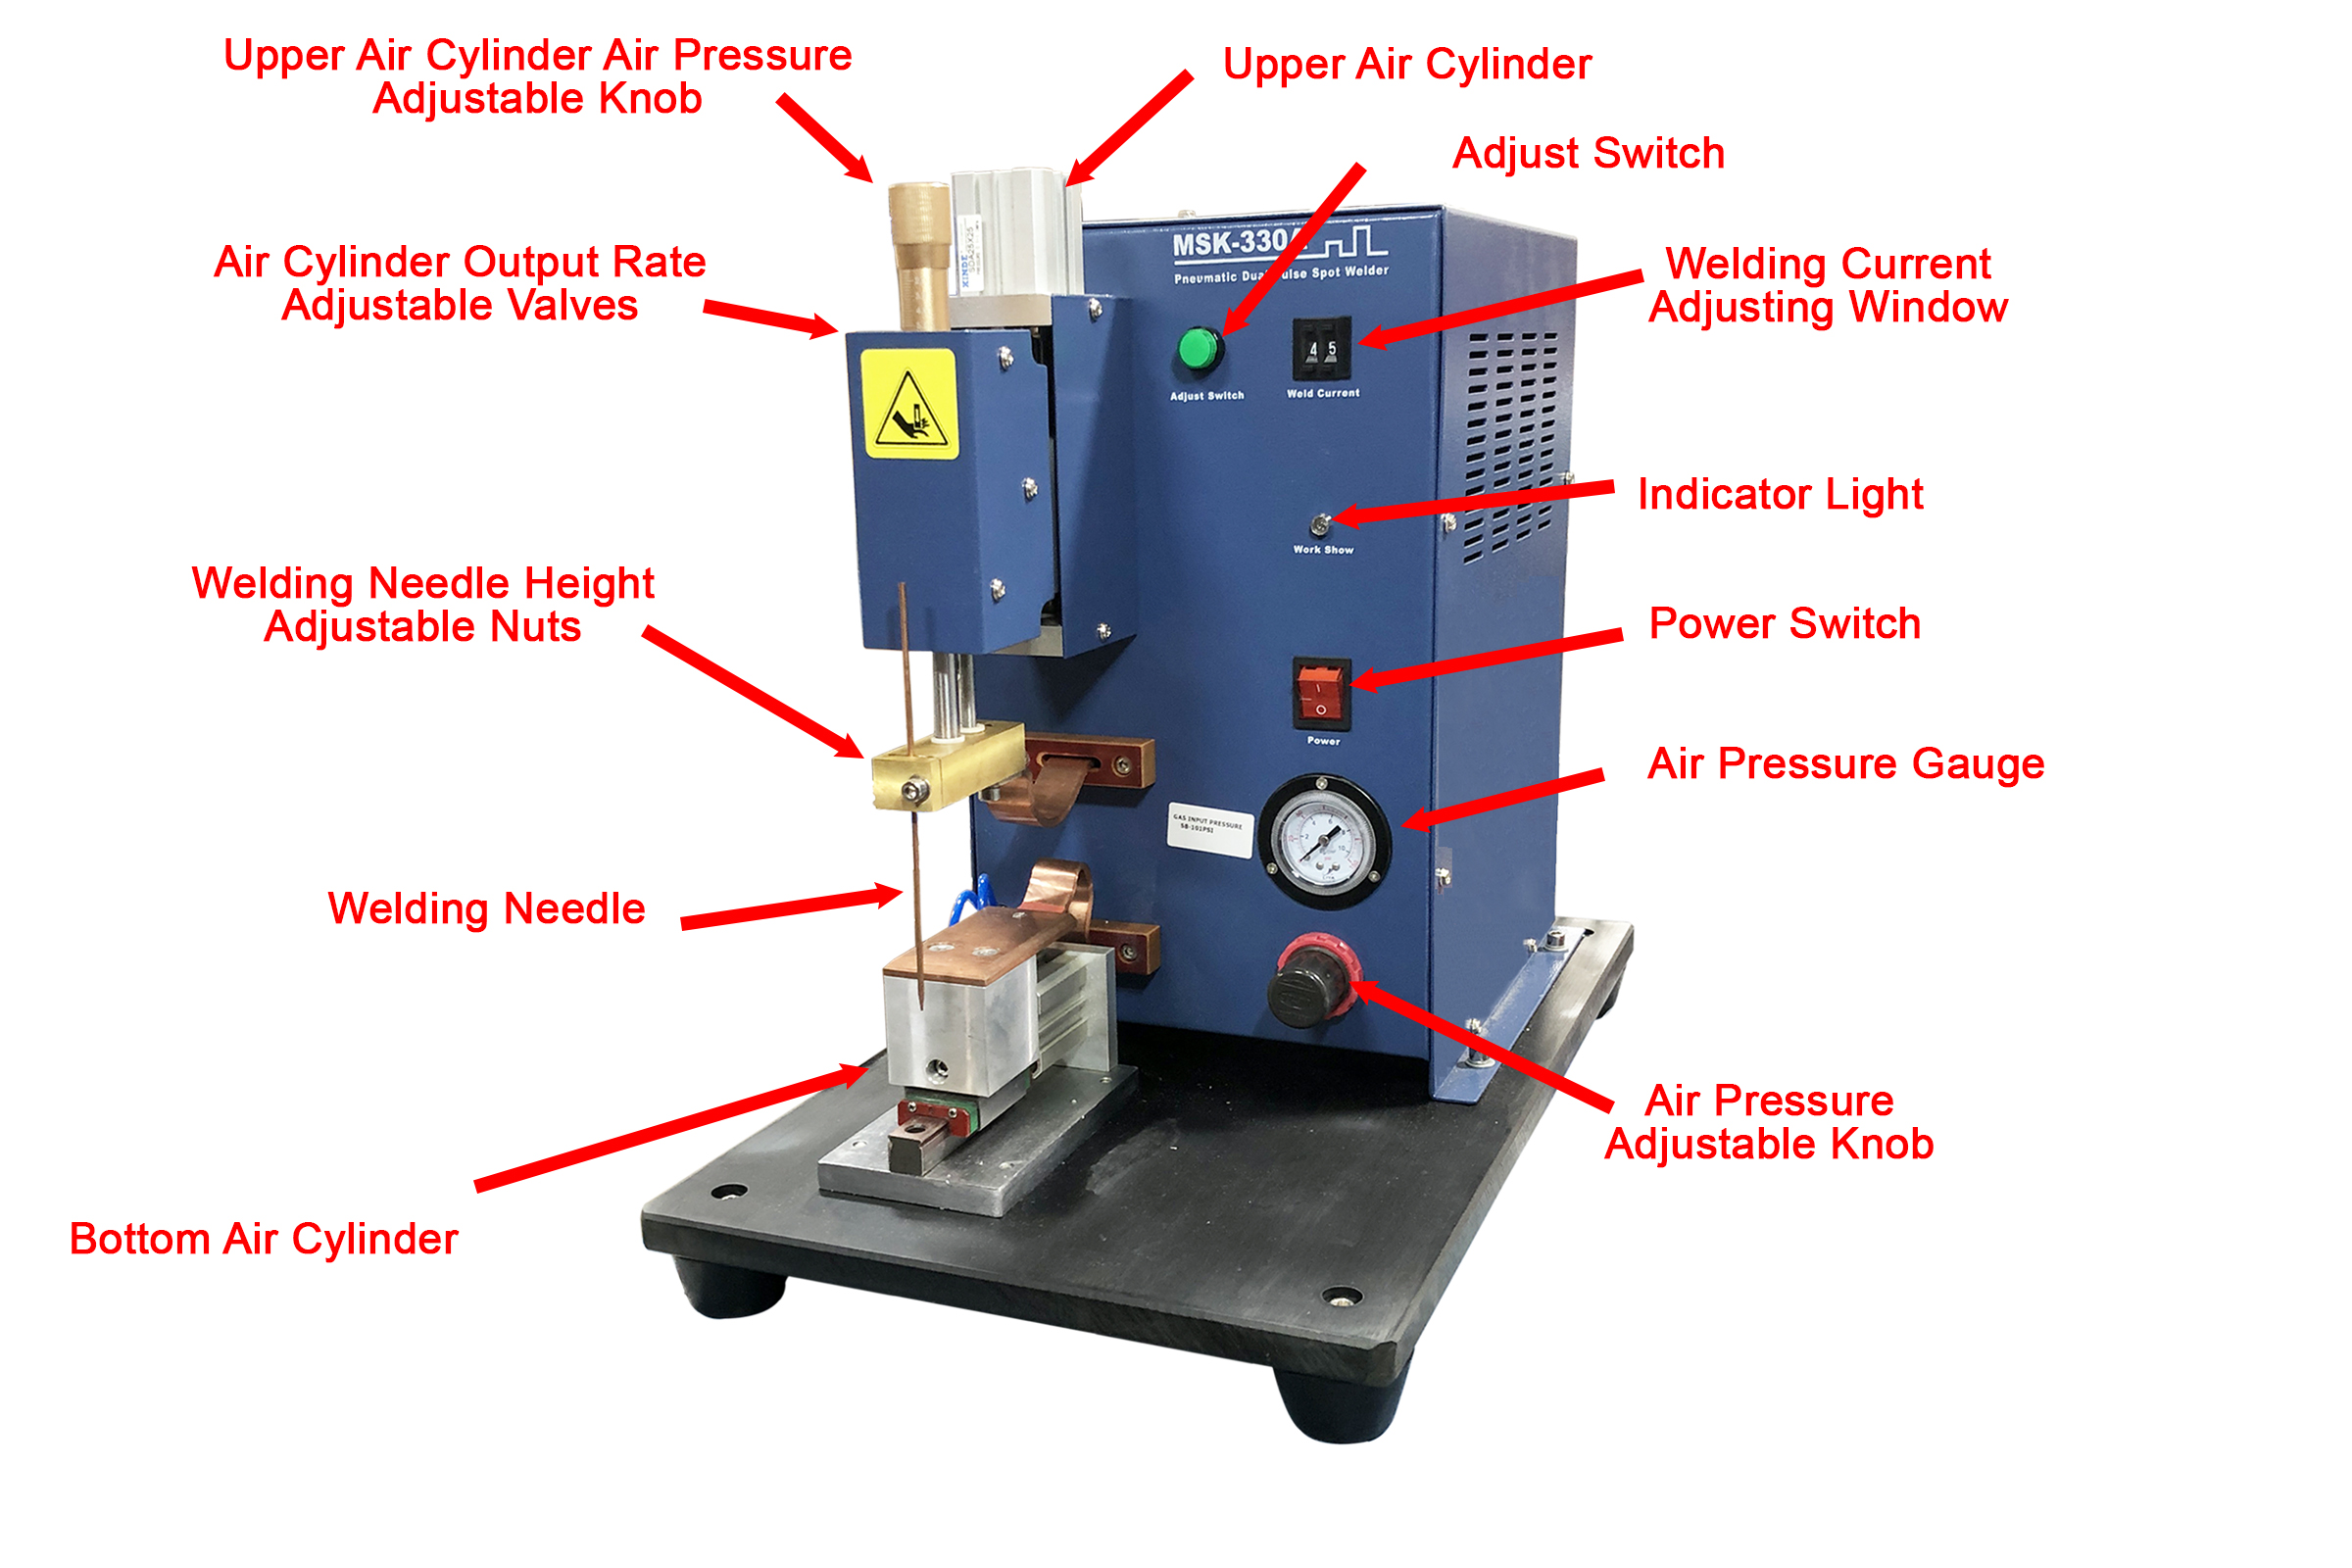 Precise Pneumatic Point Welding Machine For Professional Li On Battery Research Msk 330a